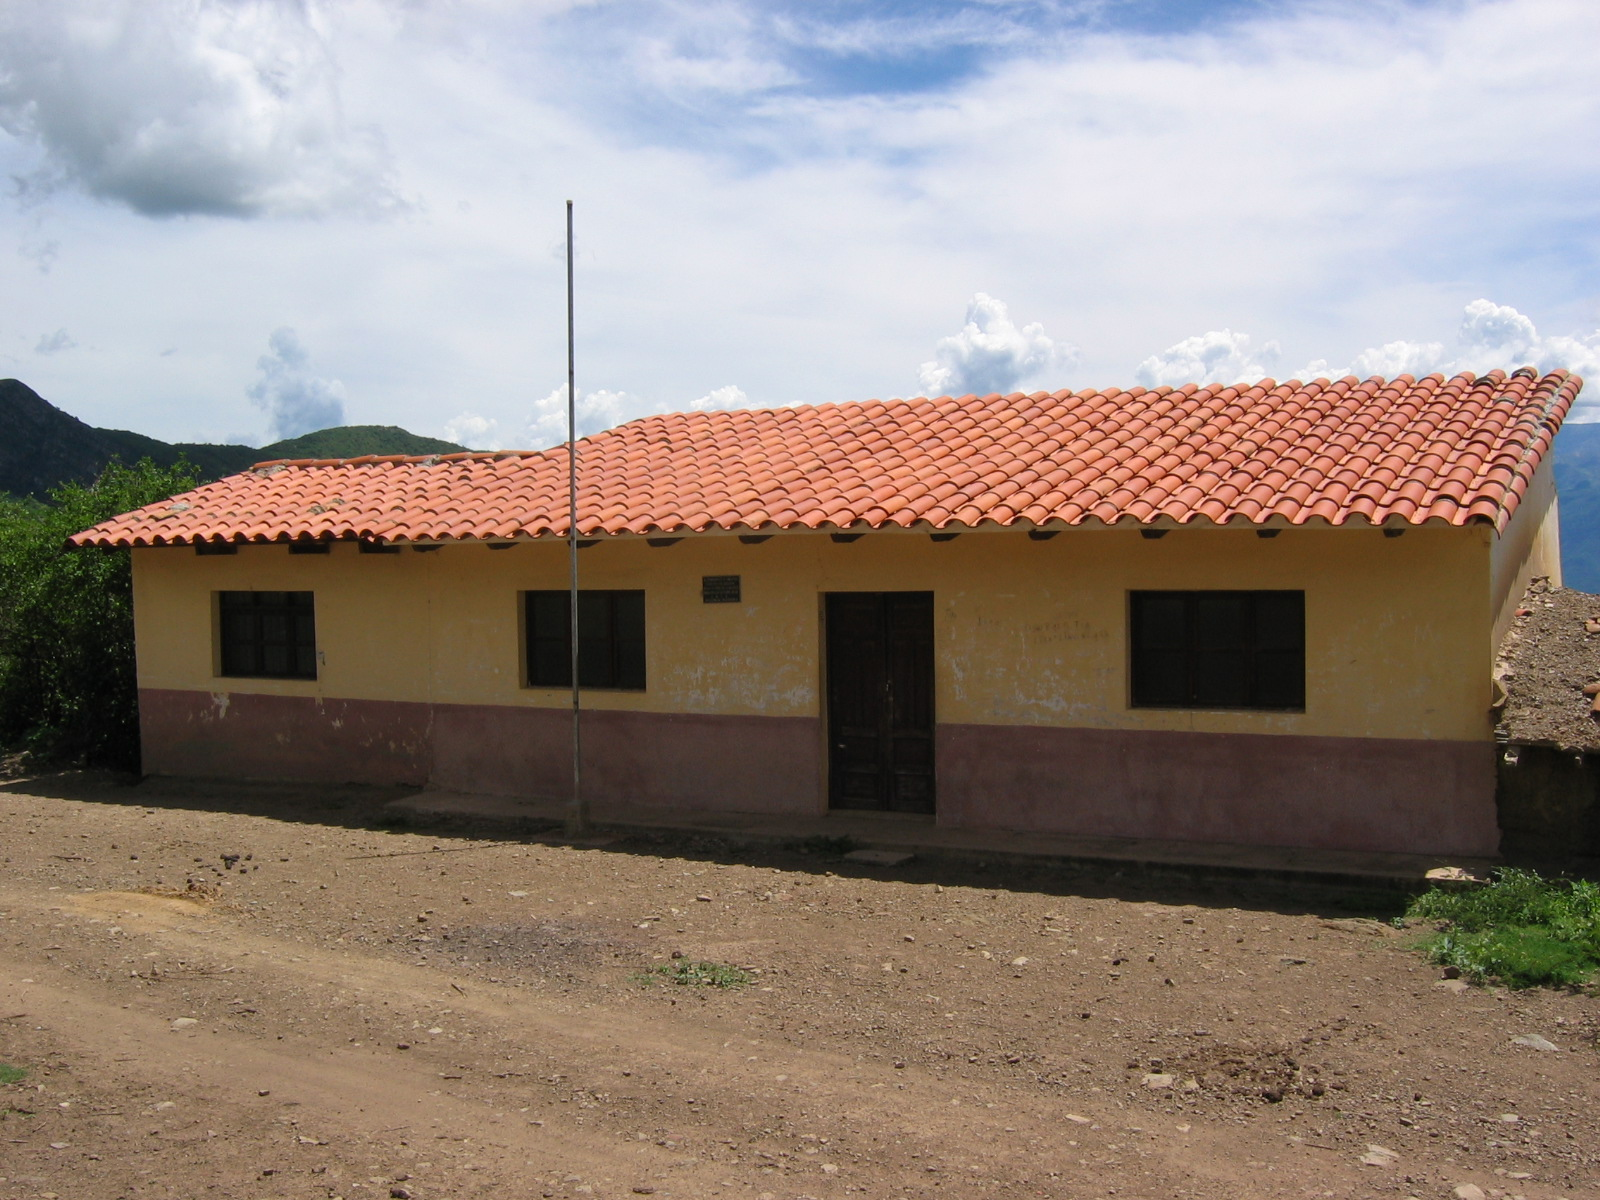 http://upload.wikimedia.org/wikipedia/commons/7/70/Che_Guevara_school.jpg